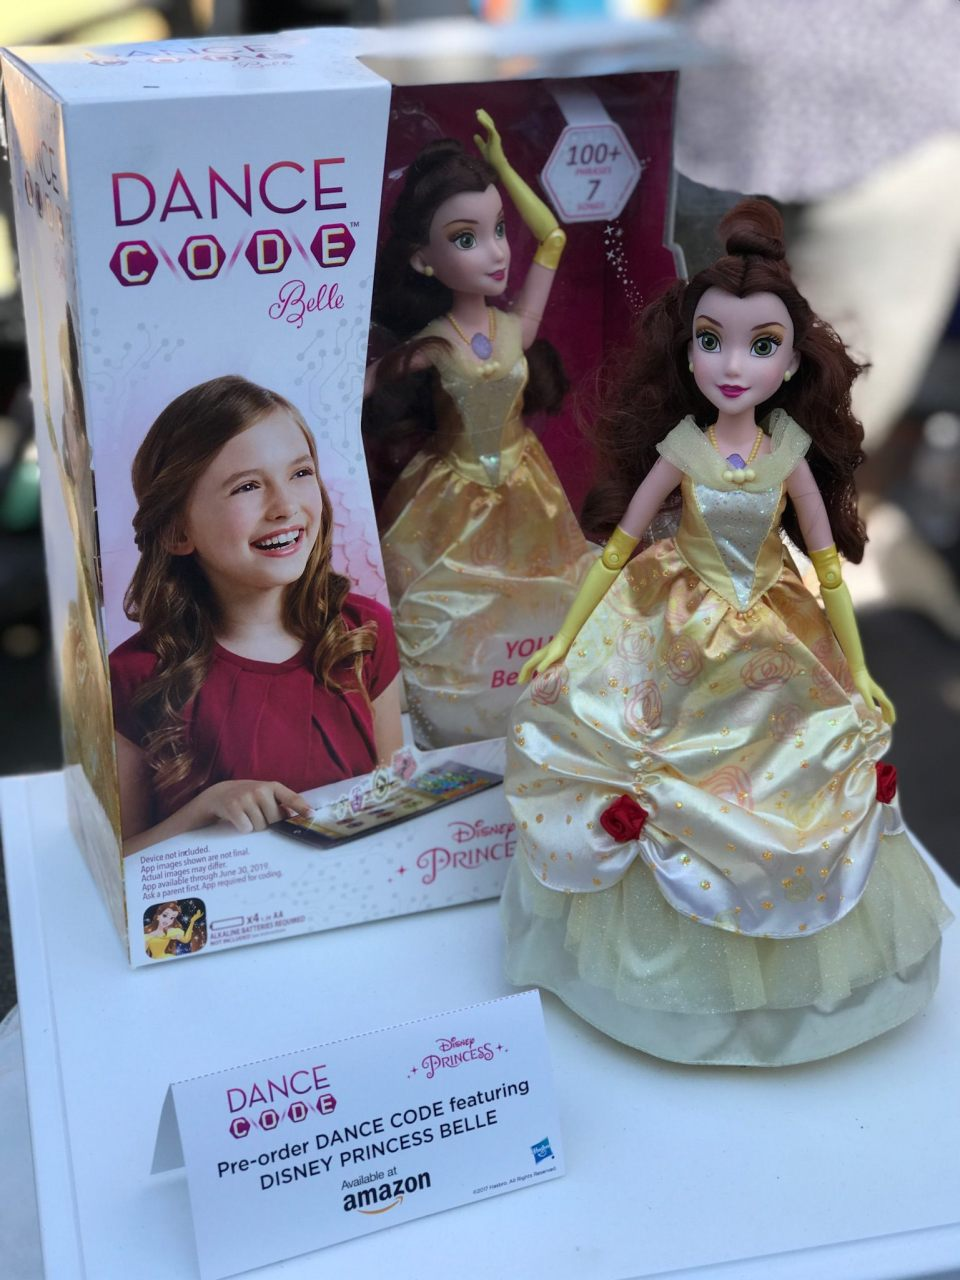 Dance Code Belle - Amazon Exclusive